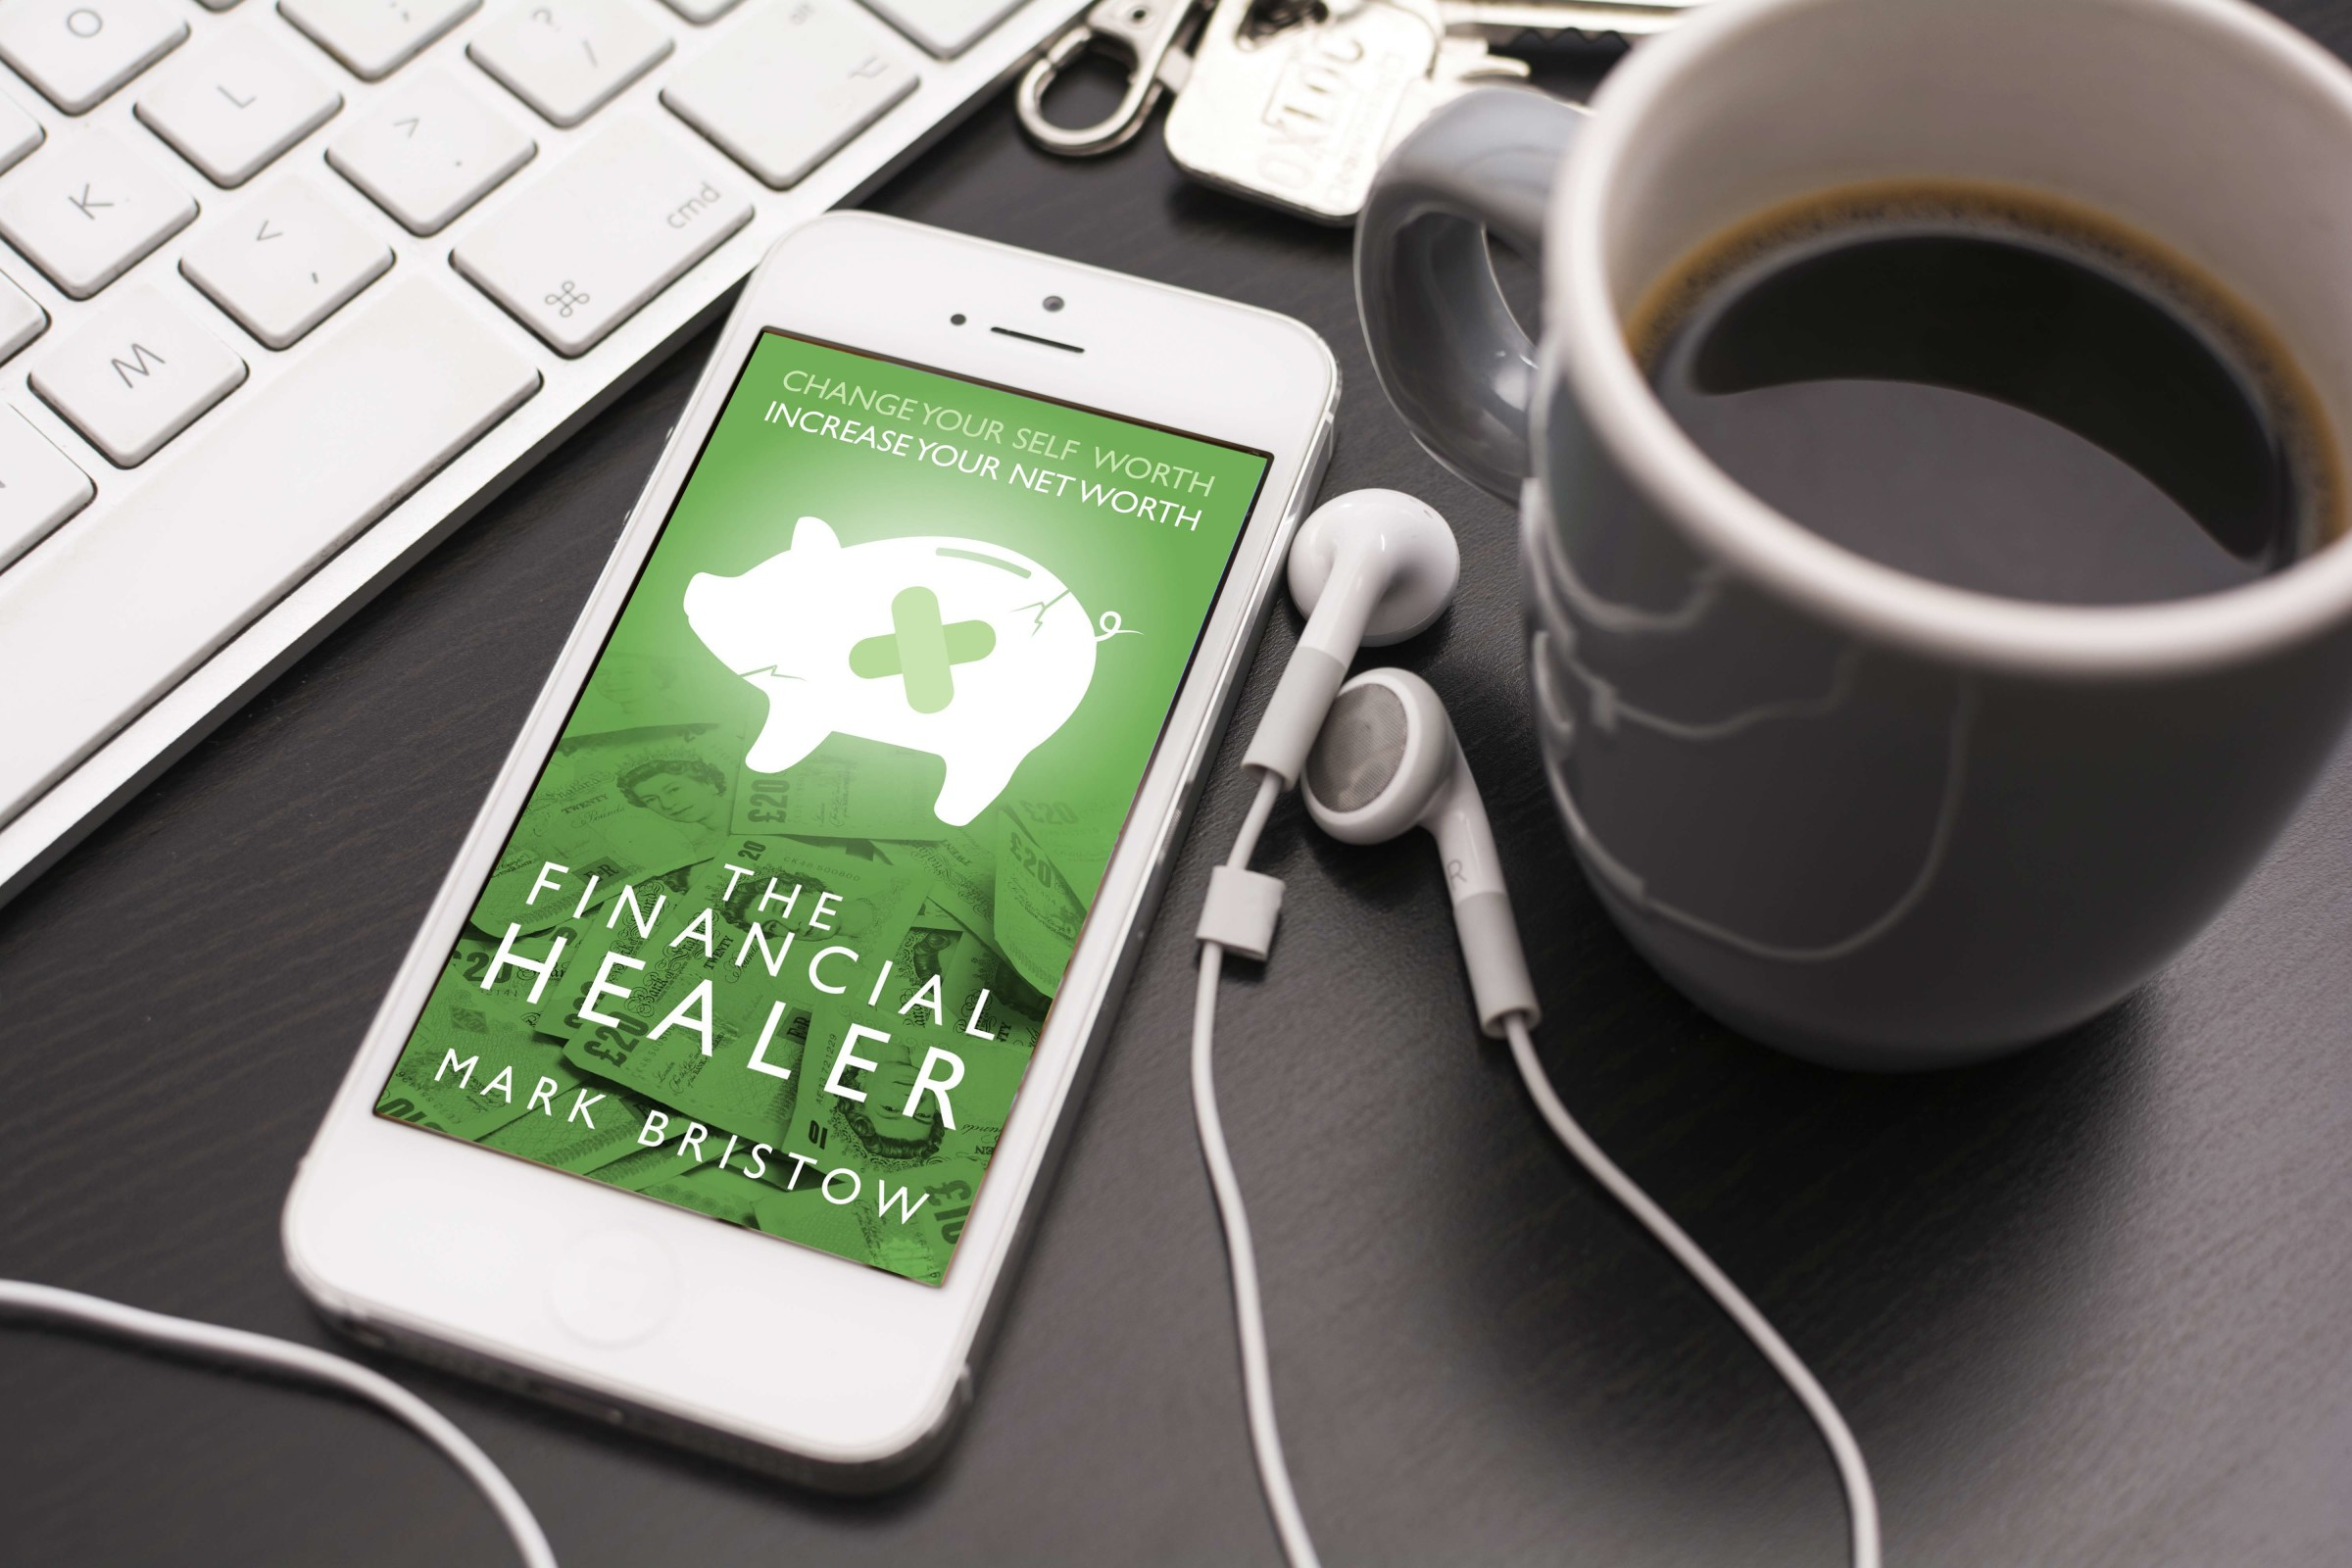 financial healer selfhelp book mobile kindle